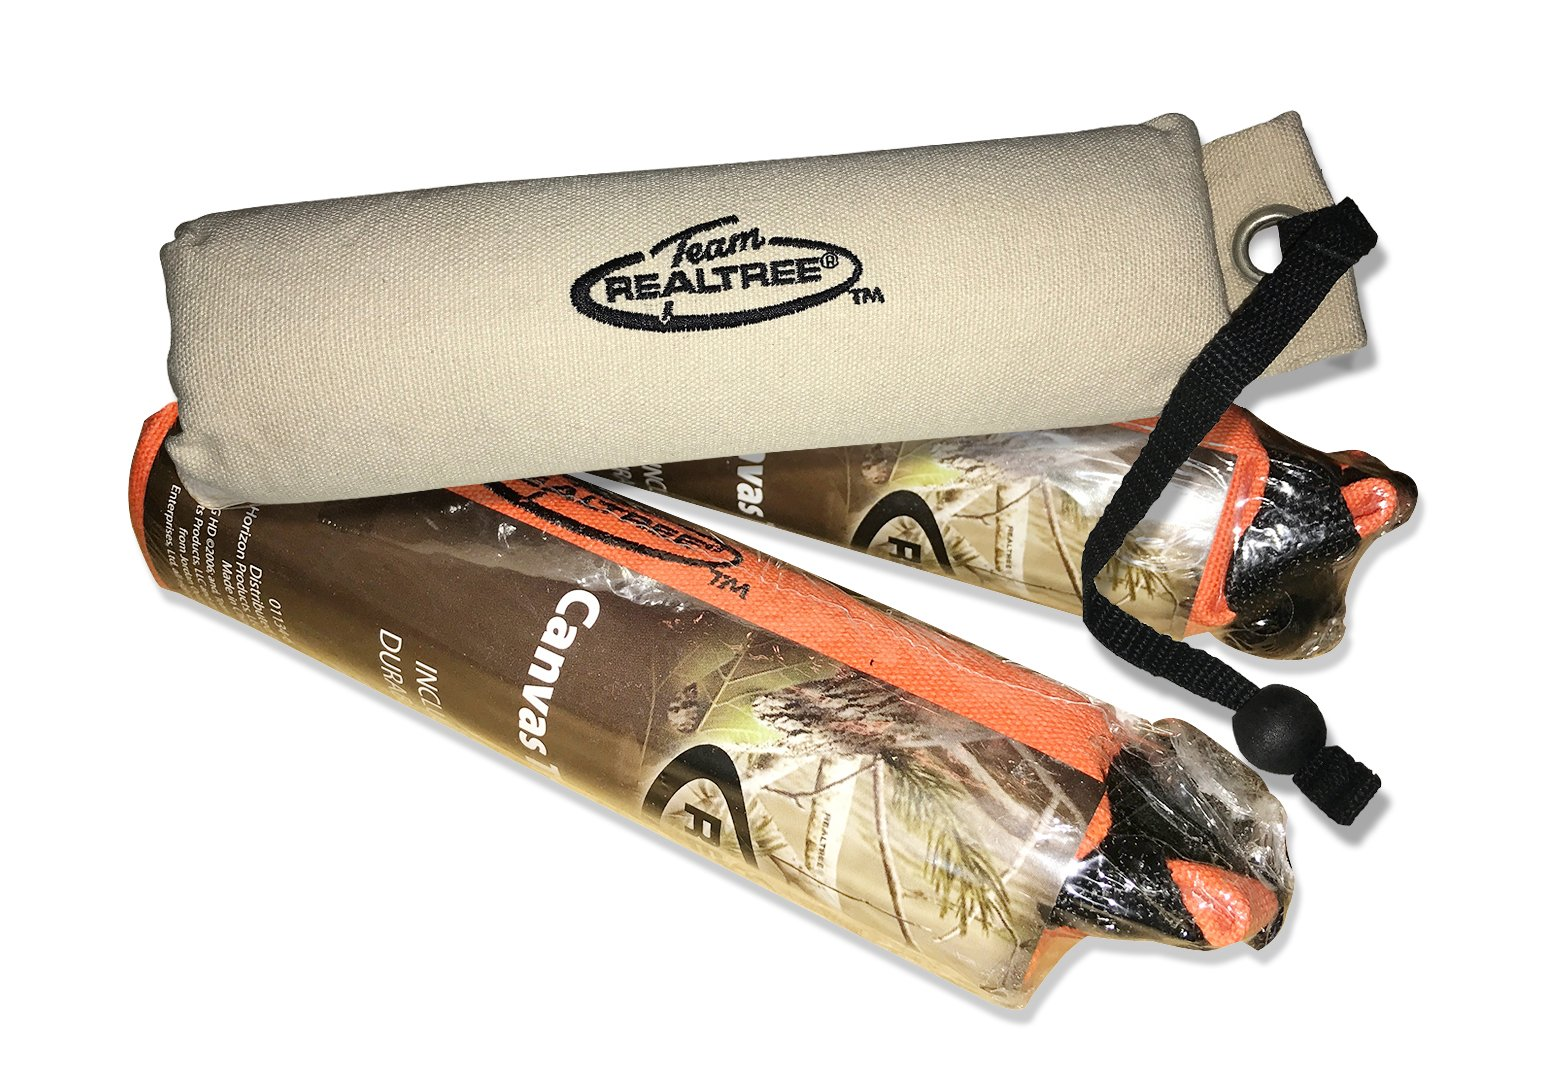 Team REALTREE 3-pack Floatable Canvas Dummy Dog Retriever Training Toys, Small Orange and White